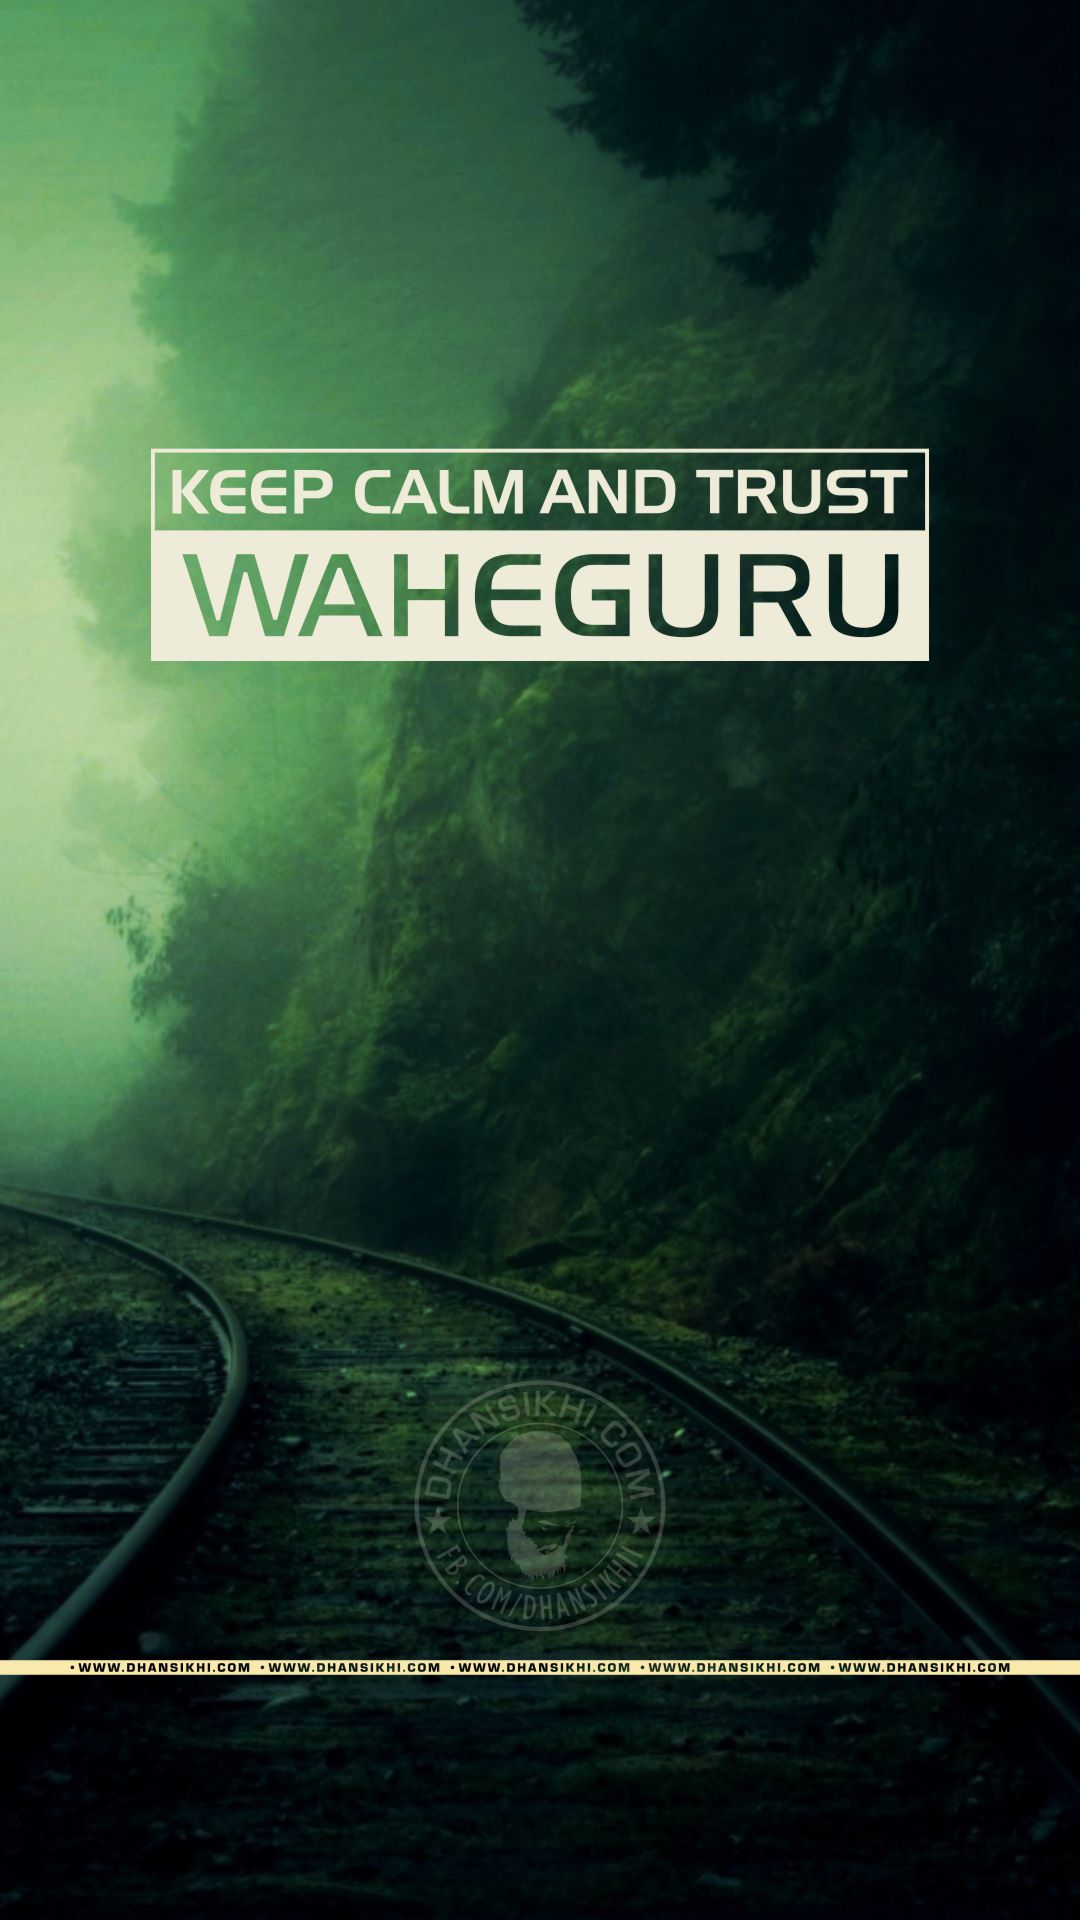 Keep Calm And Trust Waheguru. Download Image